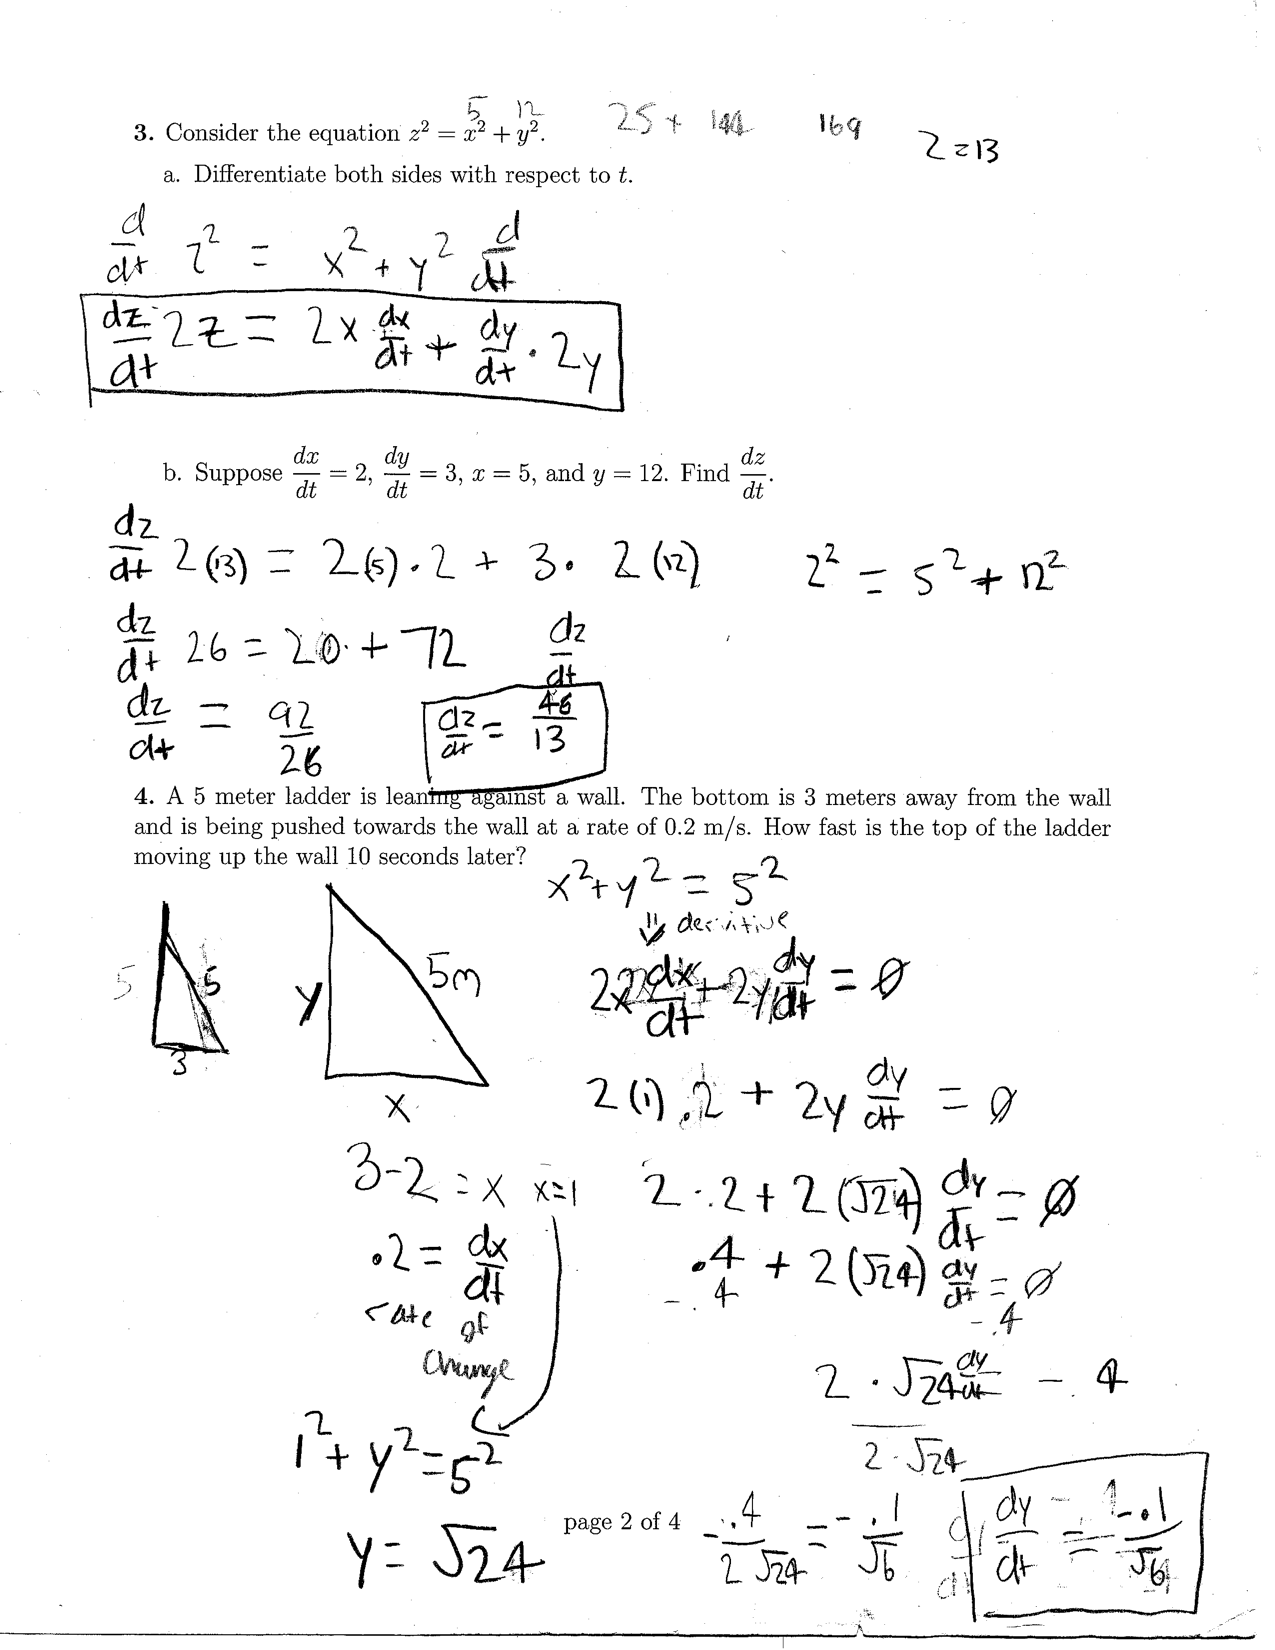 Related Rates Problems